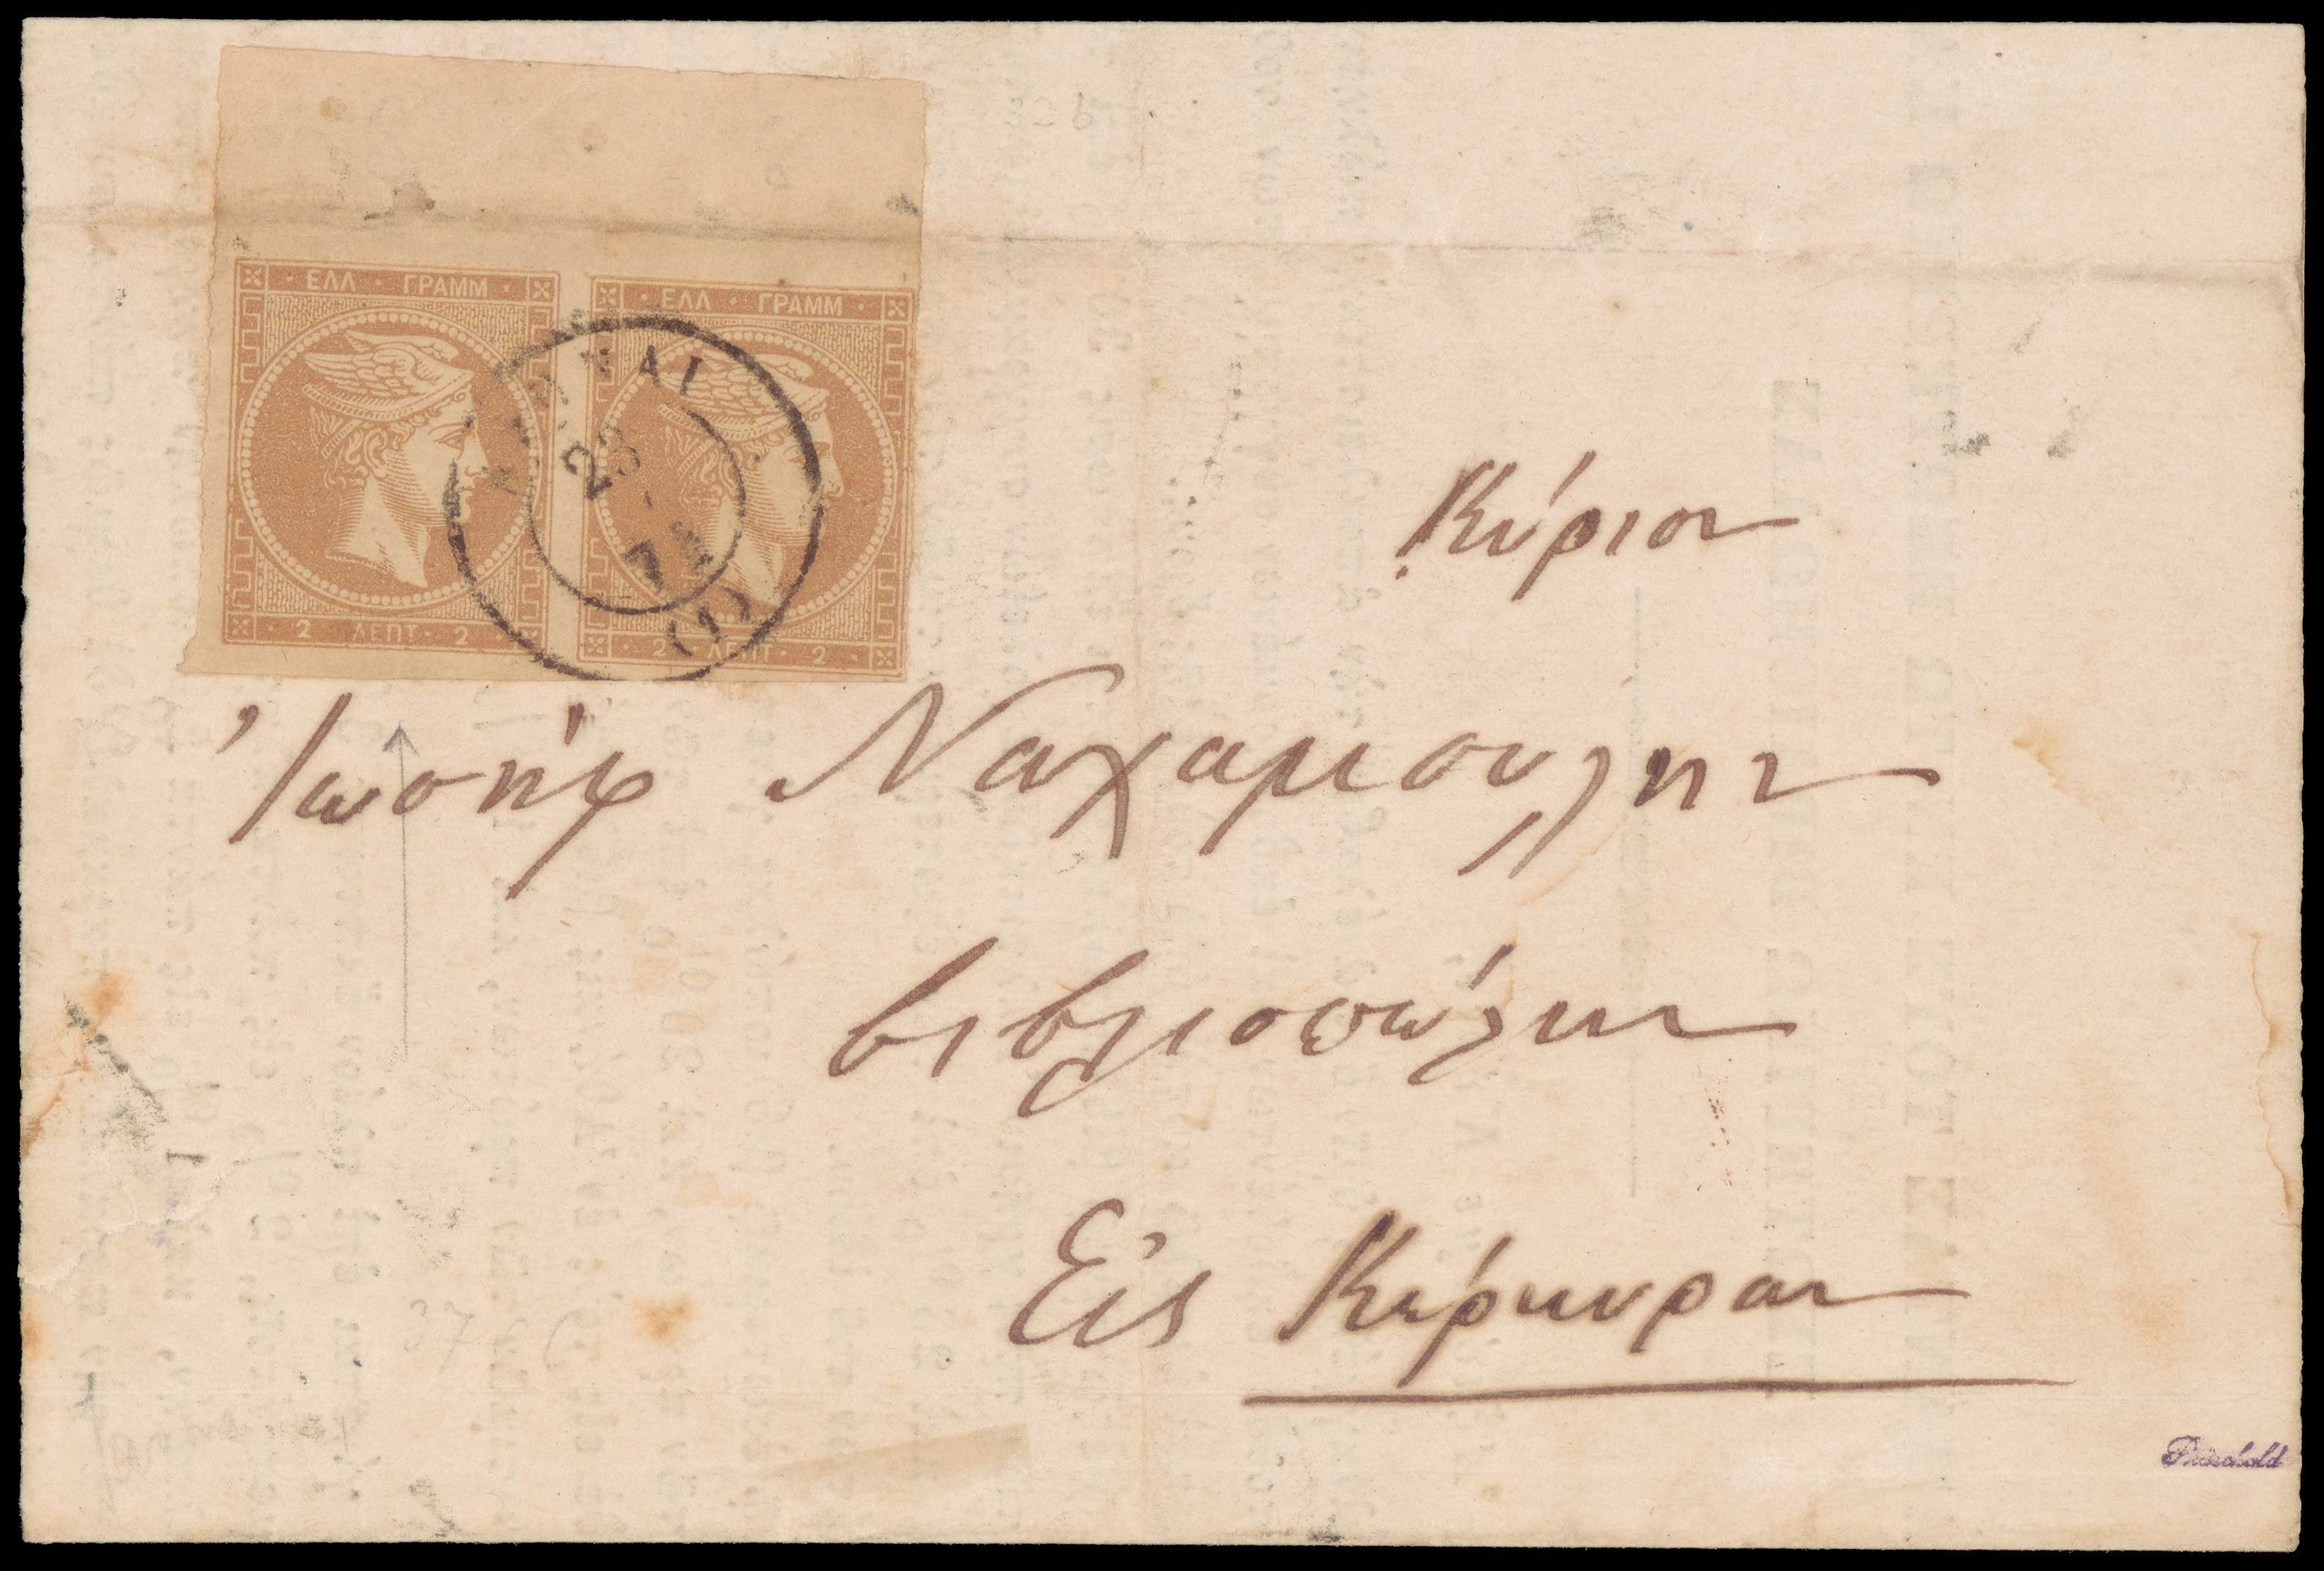 Lot 96 - -  LARGE HERMES HEAD 1862/67 consecutive athens printings -  A. Karamitsos Public & Live Internet Auction 666 Large Hermes Heads Exceptional Stamps from Great Collections